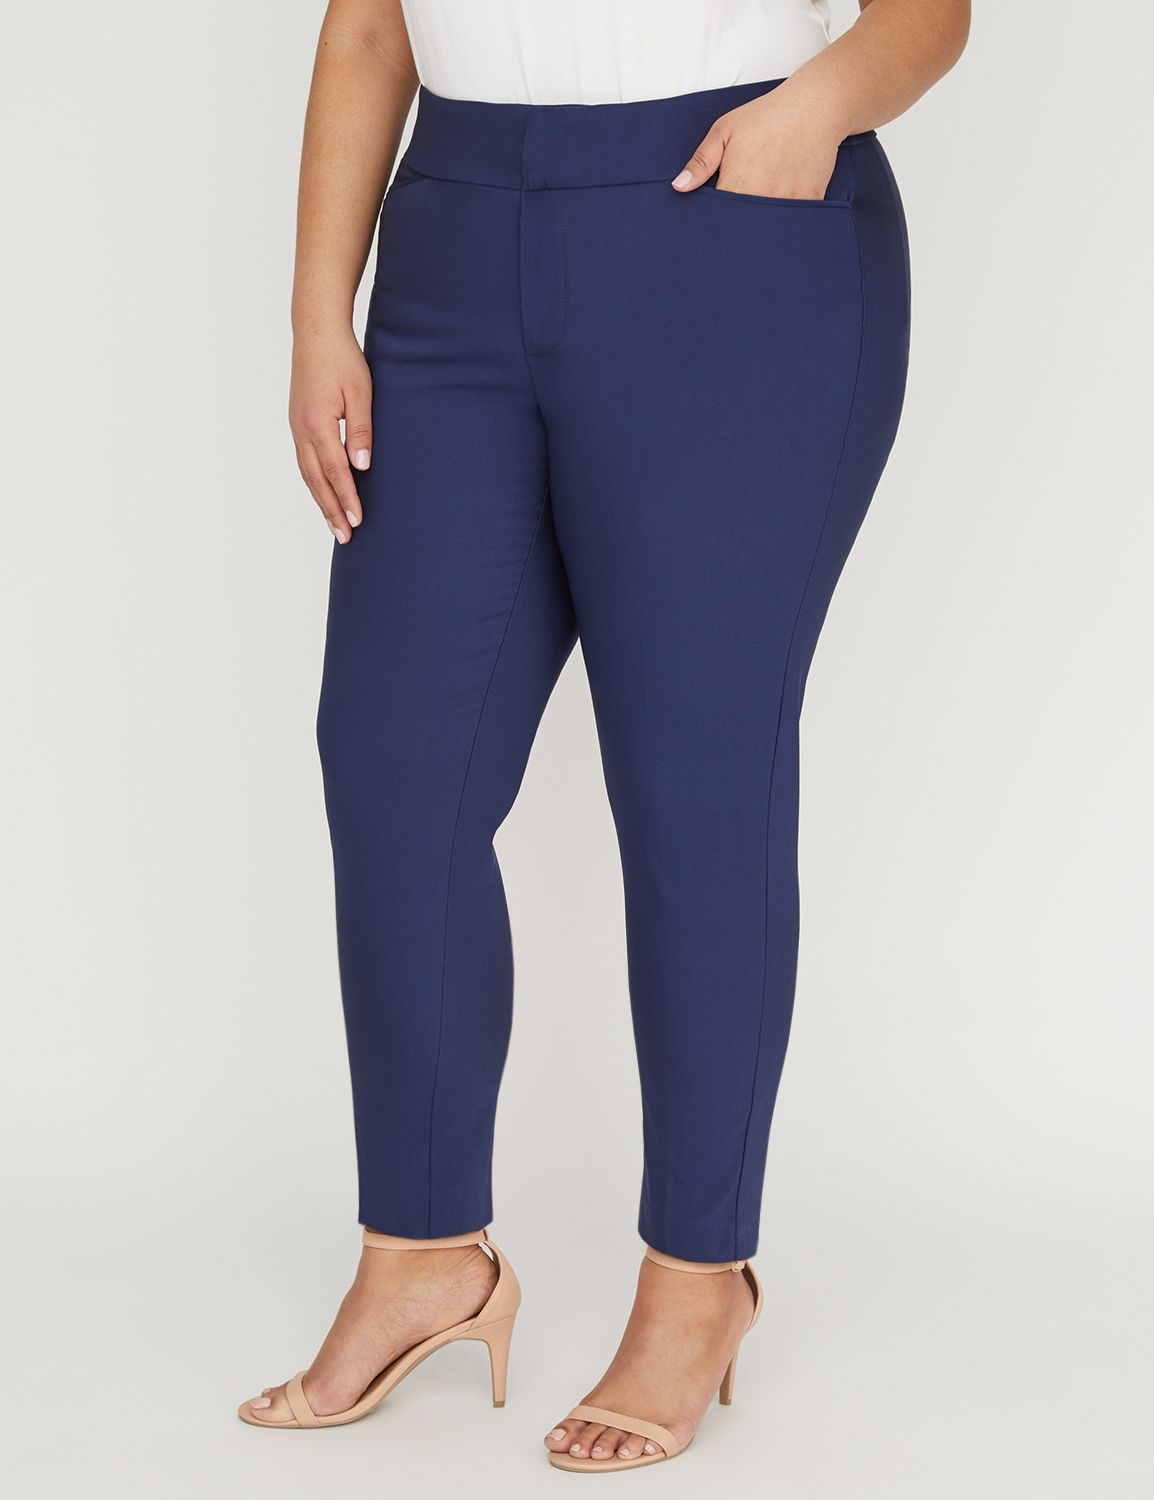 Updated Modern Stretch Ankle Pant 1087775 MODERN STRETCH WIDE WAISTBA MP-300097610